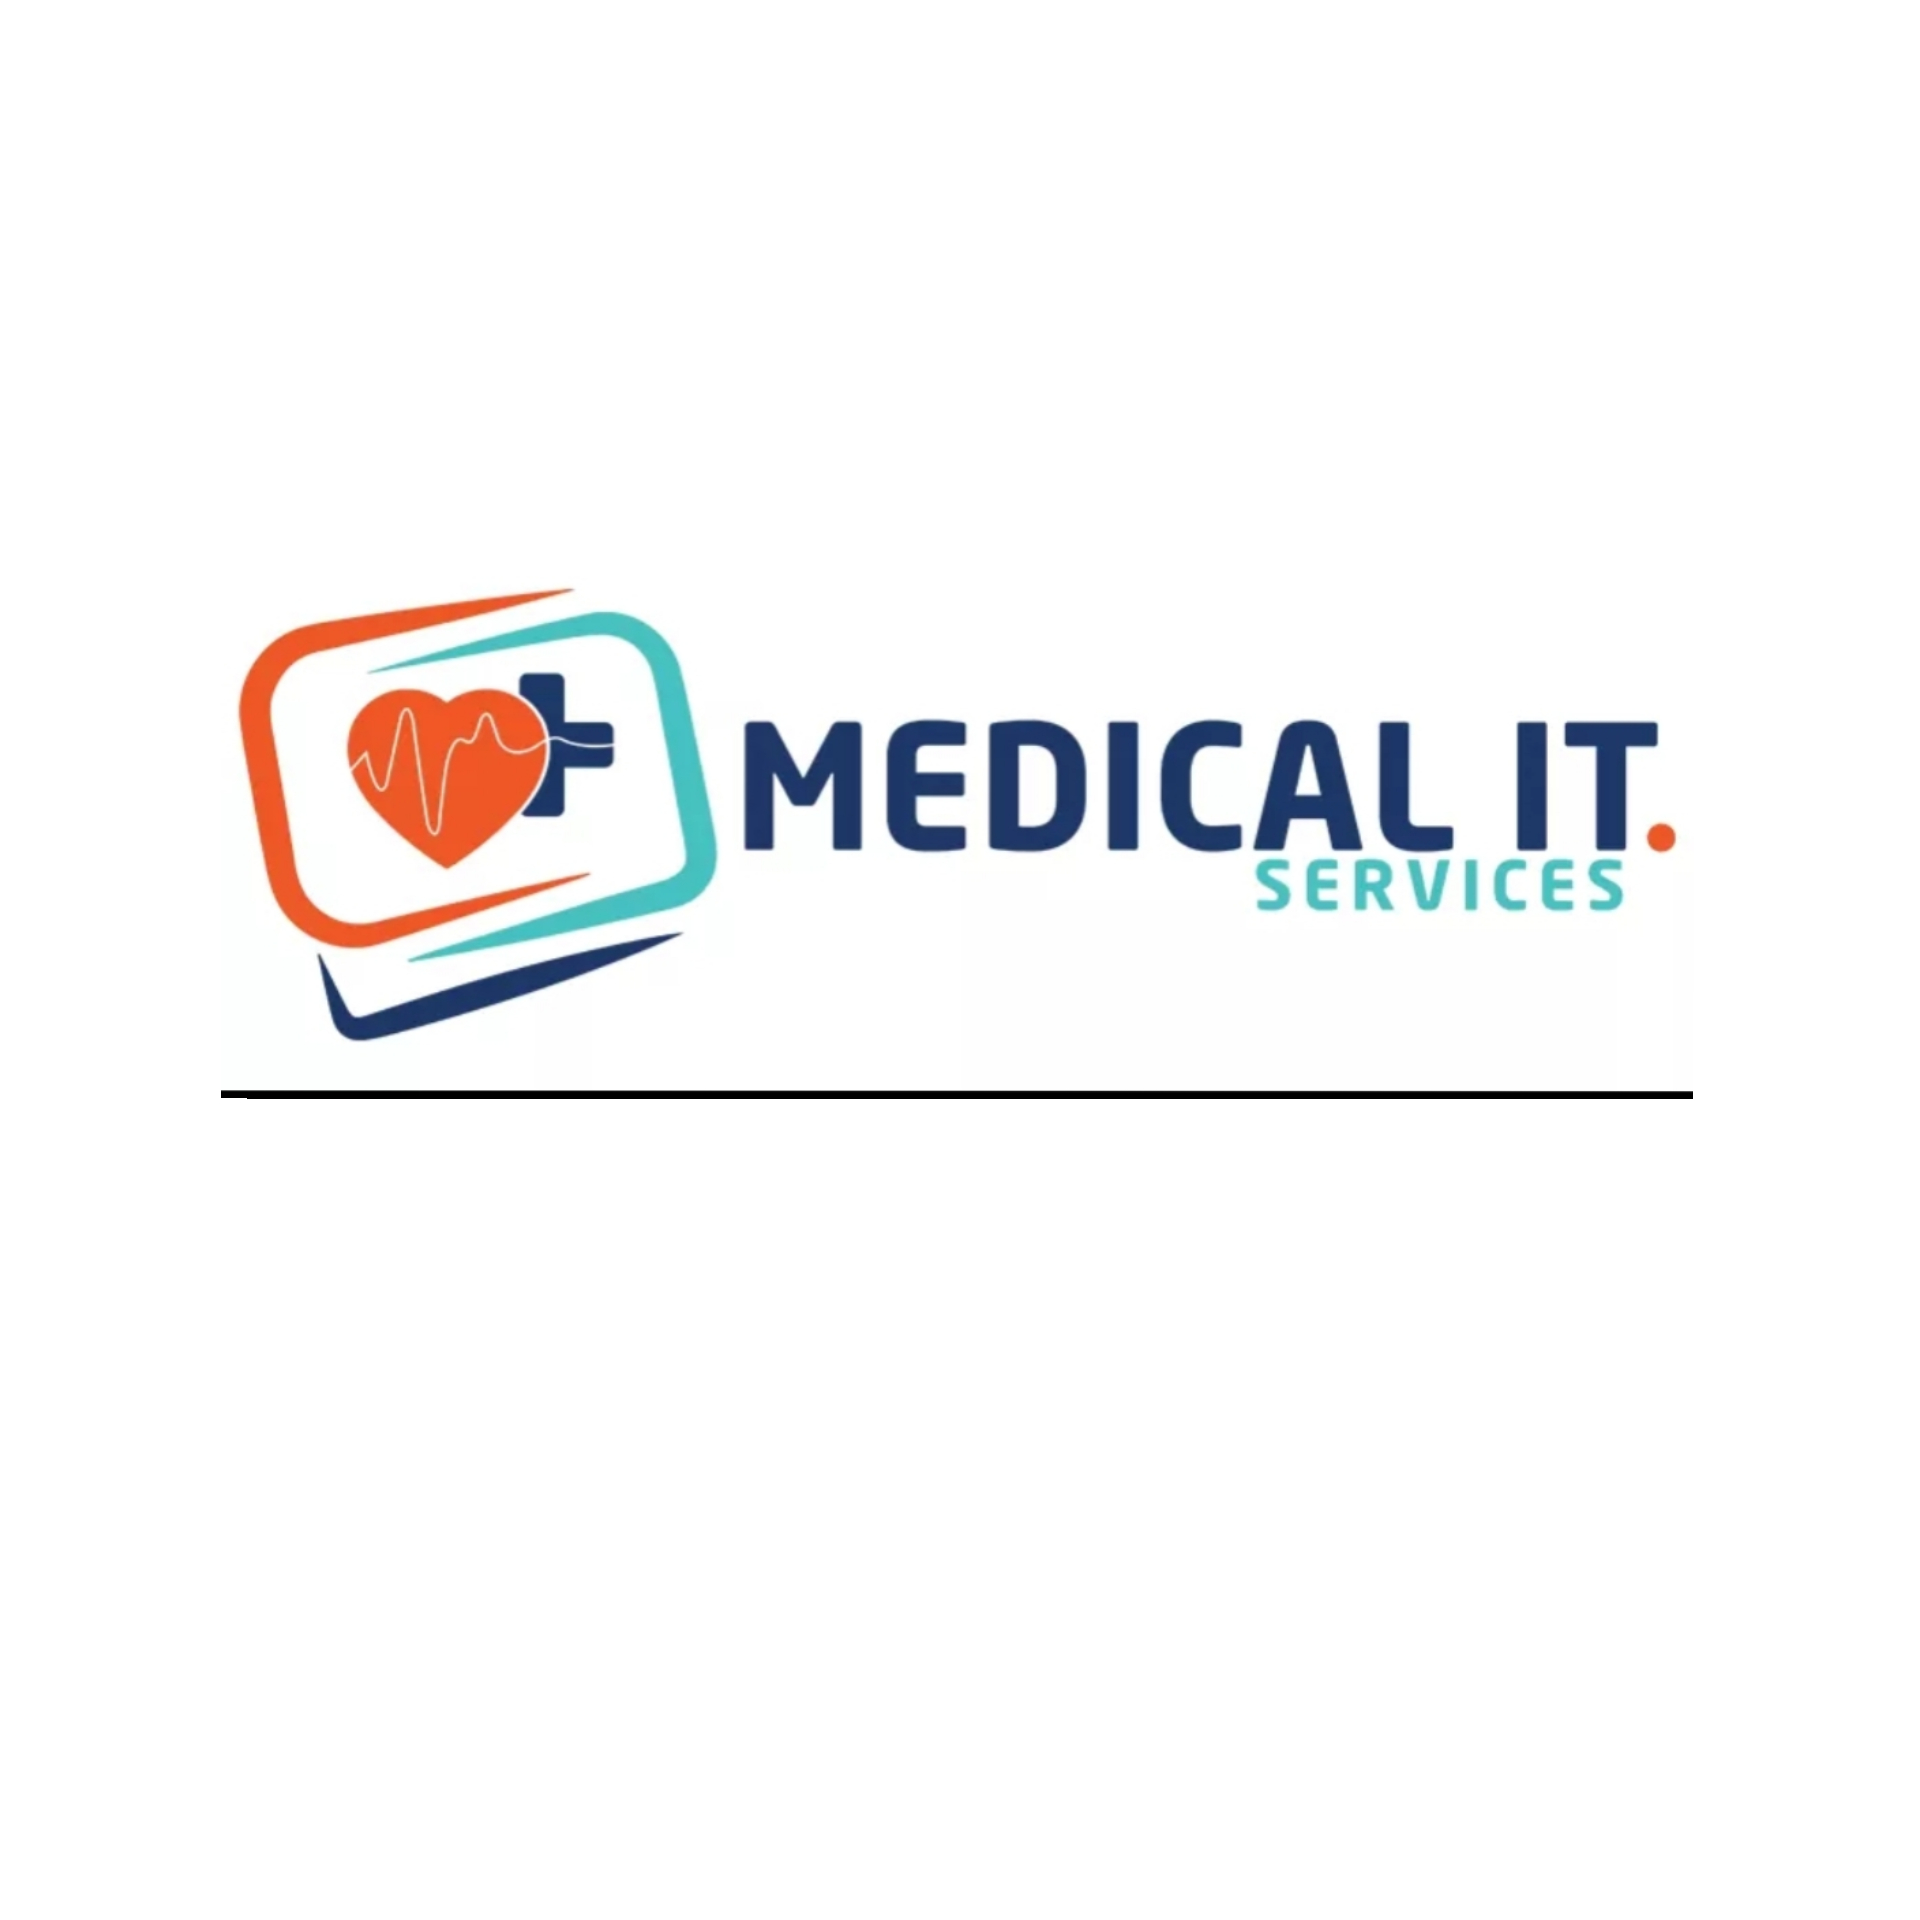 Medical IT. Services